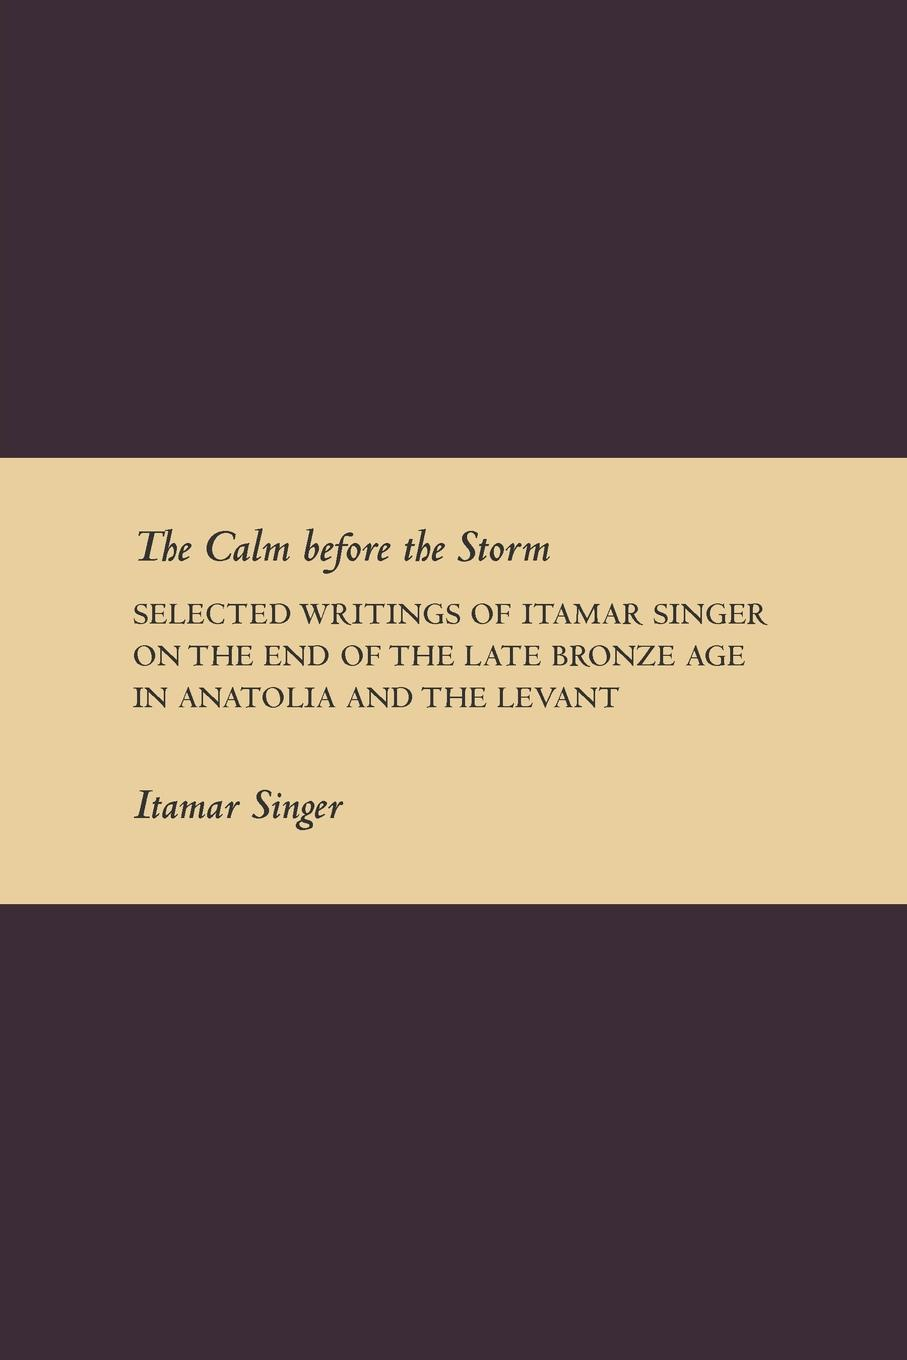 Itamar Singer The Calm Before the Storm. Selected Writings of Itamar Singer on the End of the Late Bronze Age in Anatolia and the Levant butterfly on the storm